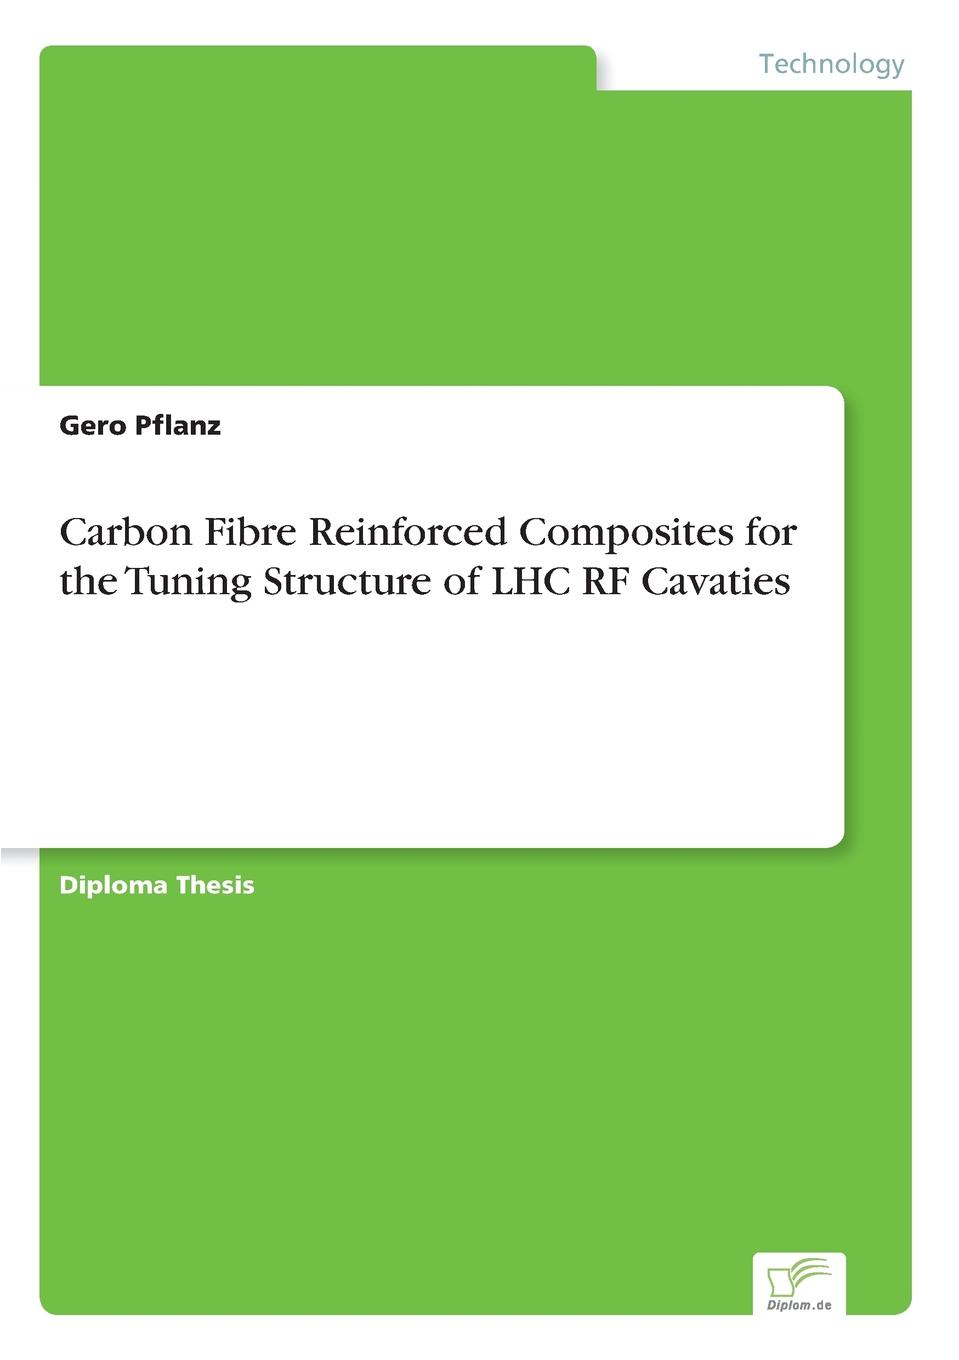 Gero Pflanz Carbon Fibre Reinforced Composites for the Tuning Structure of LHC RF Cavaties new 30g compound heatsink silicone syringe tube thermal paste grease tube radiator cooler cooling for computer pc cpu